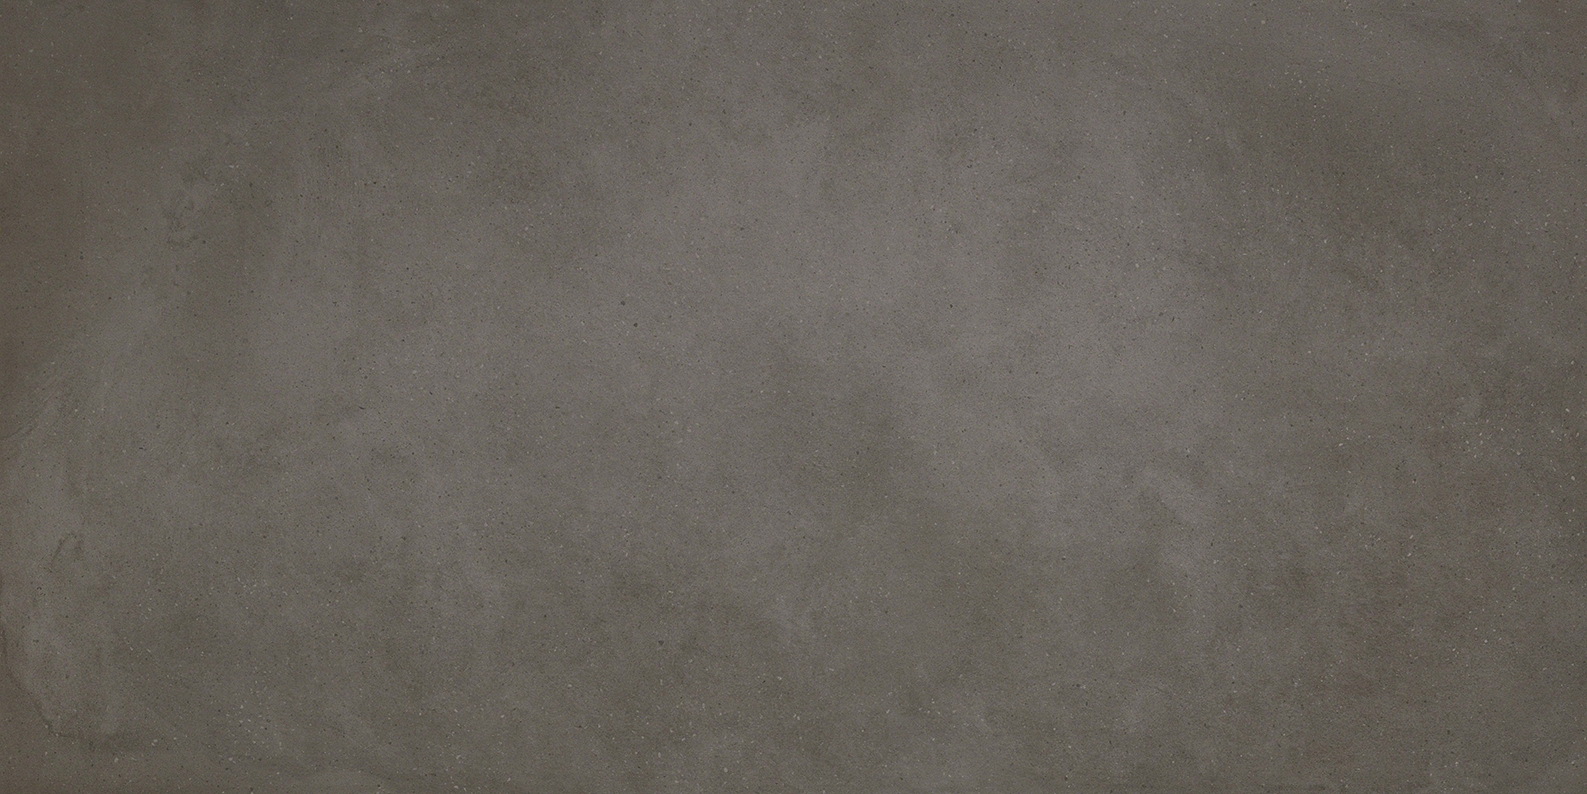 Dwell Smoke 750x1500mm Matte Finish Floor Tile (1.12m2 box)